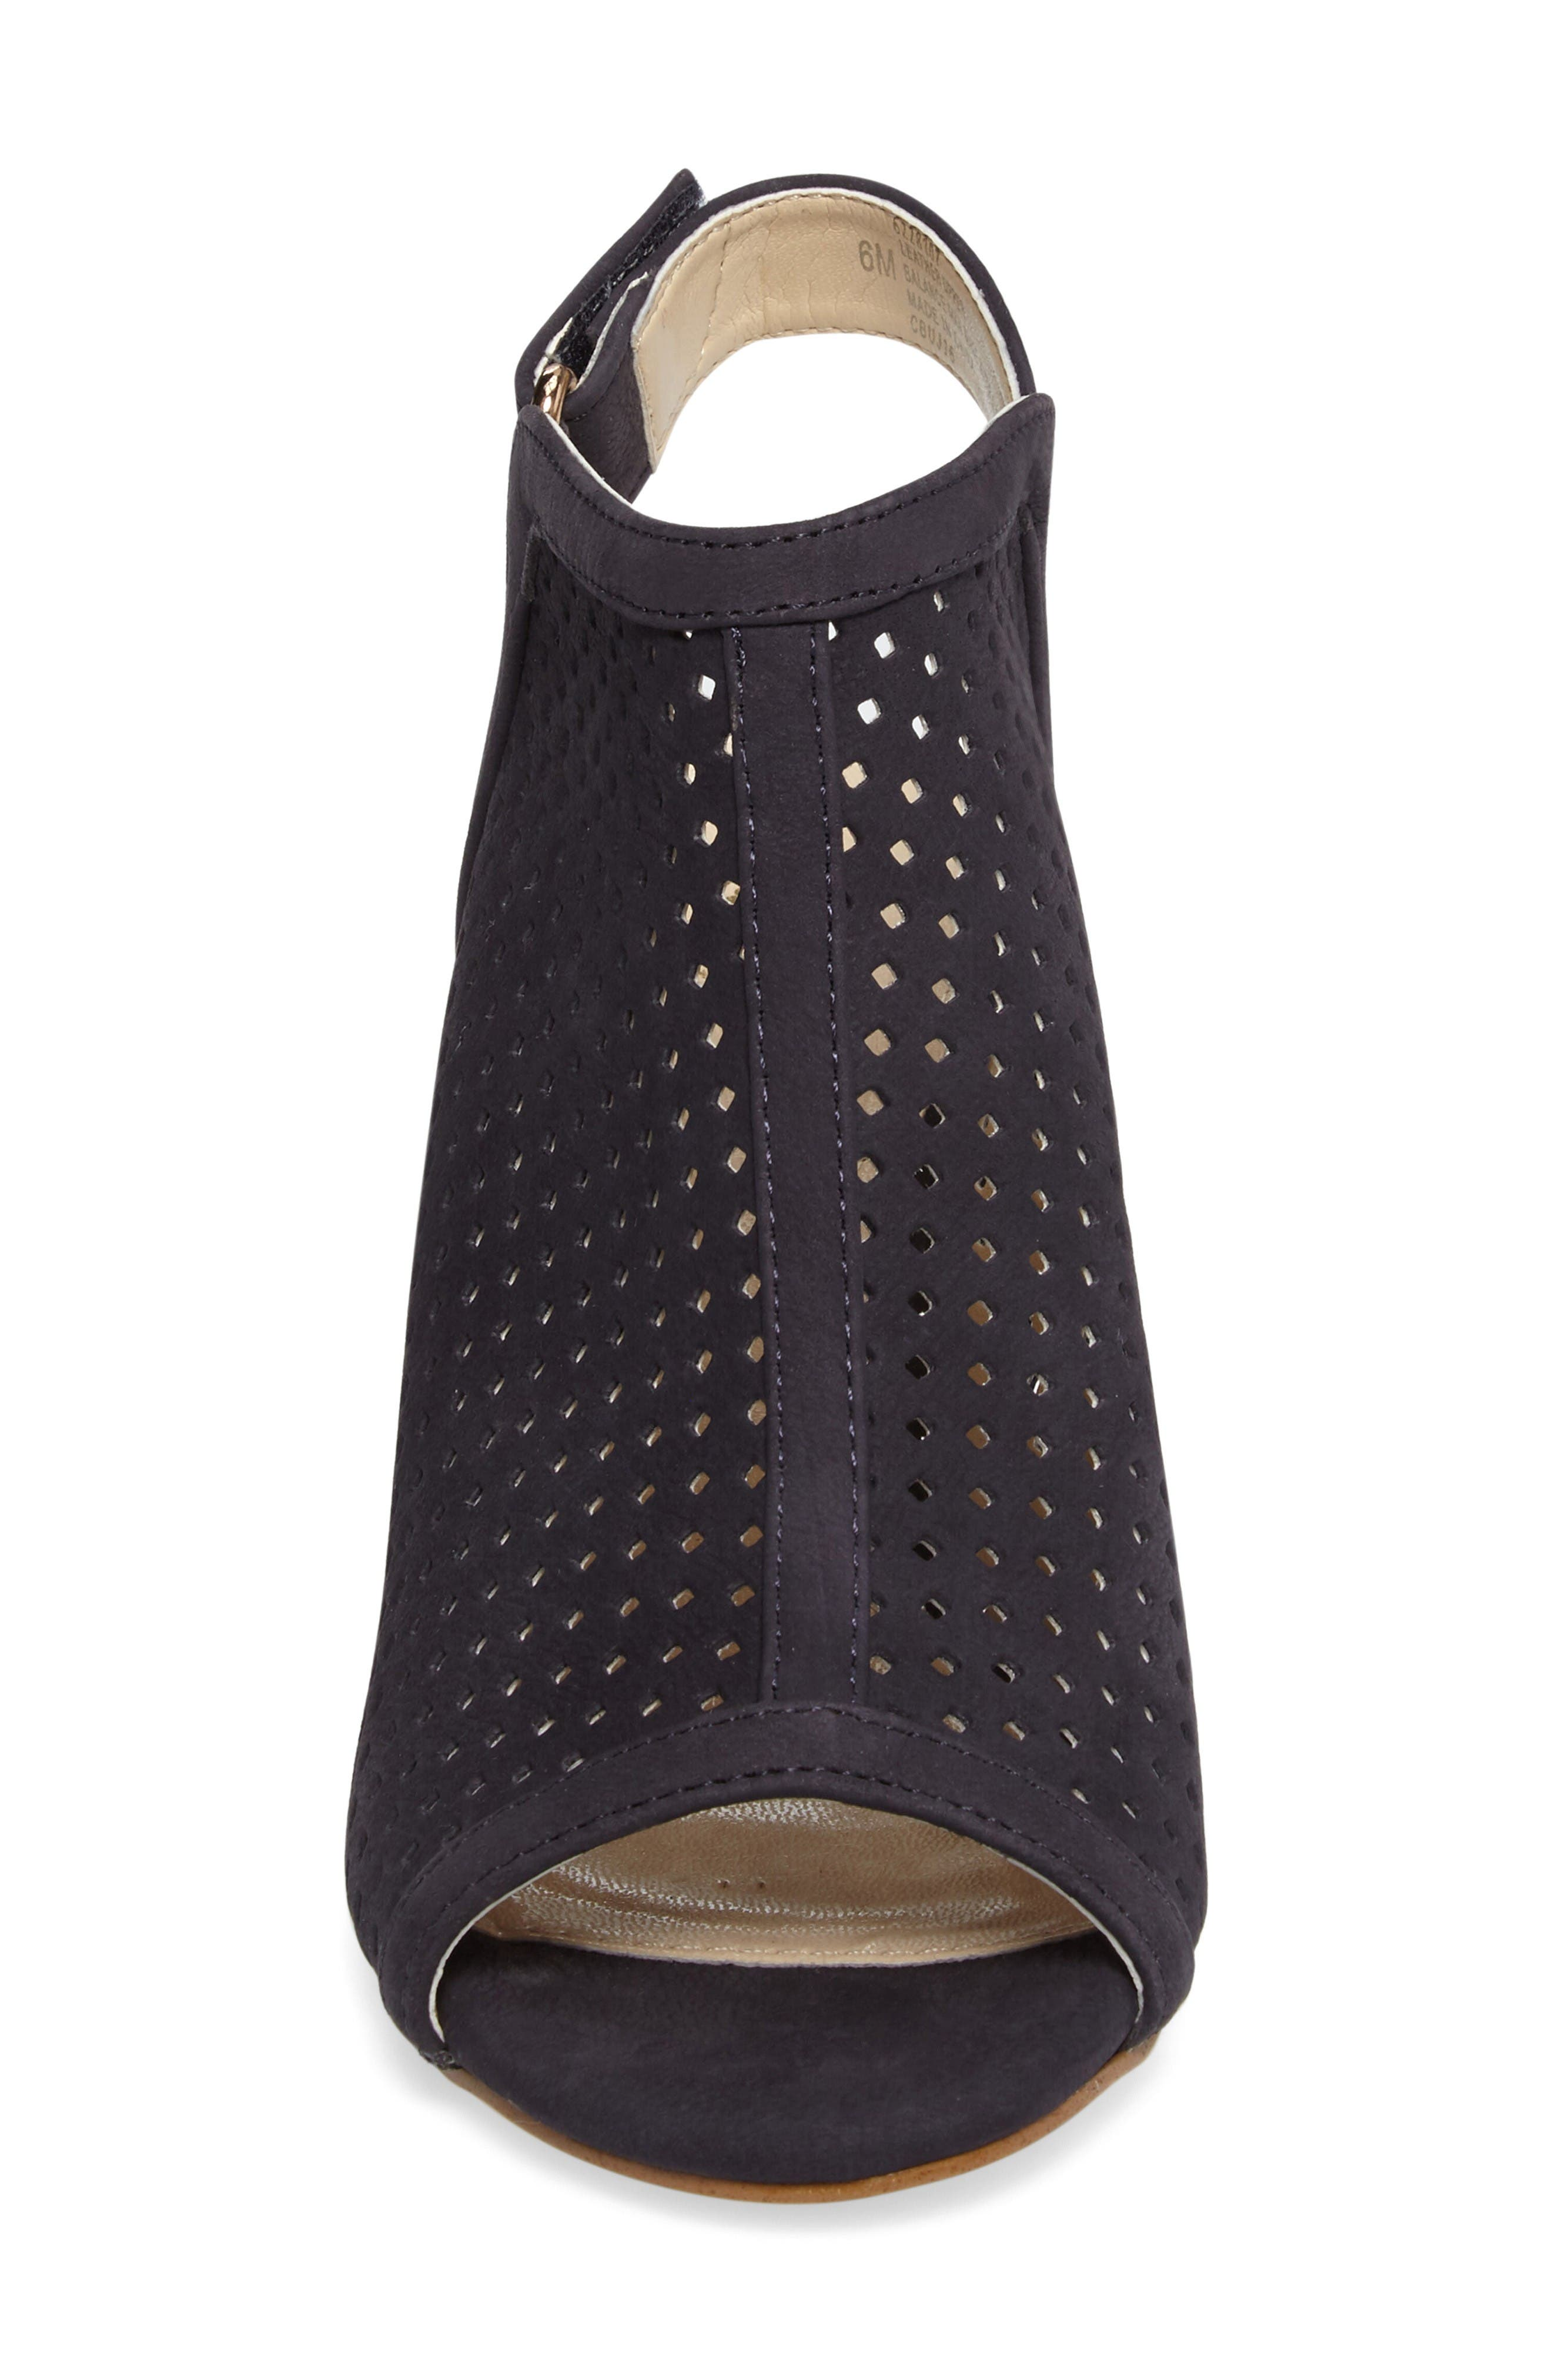 Alternate Image 4  - Isolá 'Lora' Perforated Open-Toe Bootie Sandal (Women)